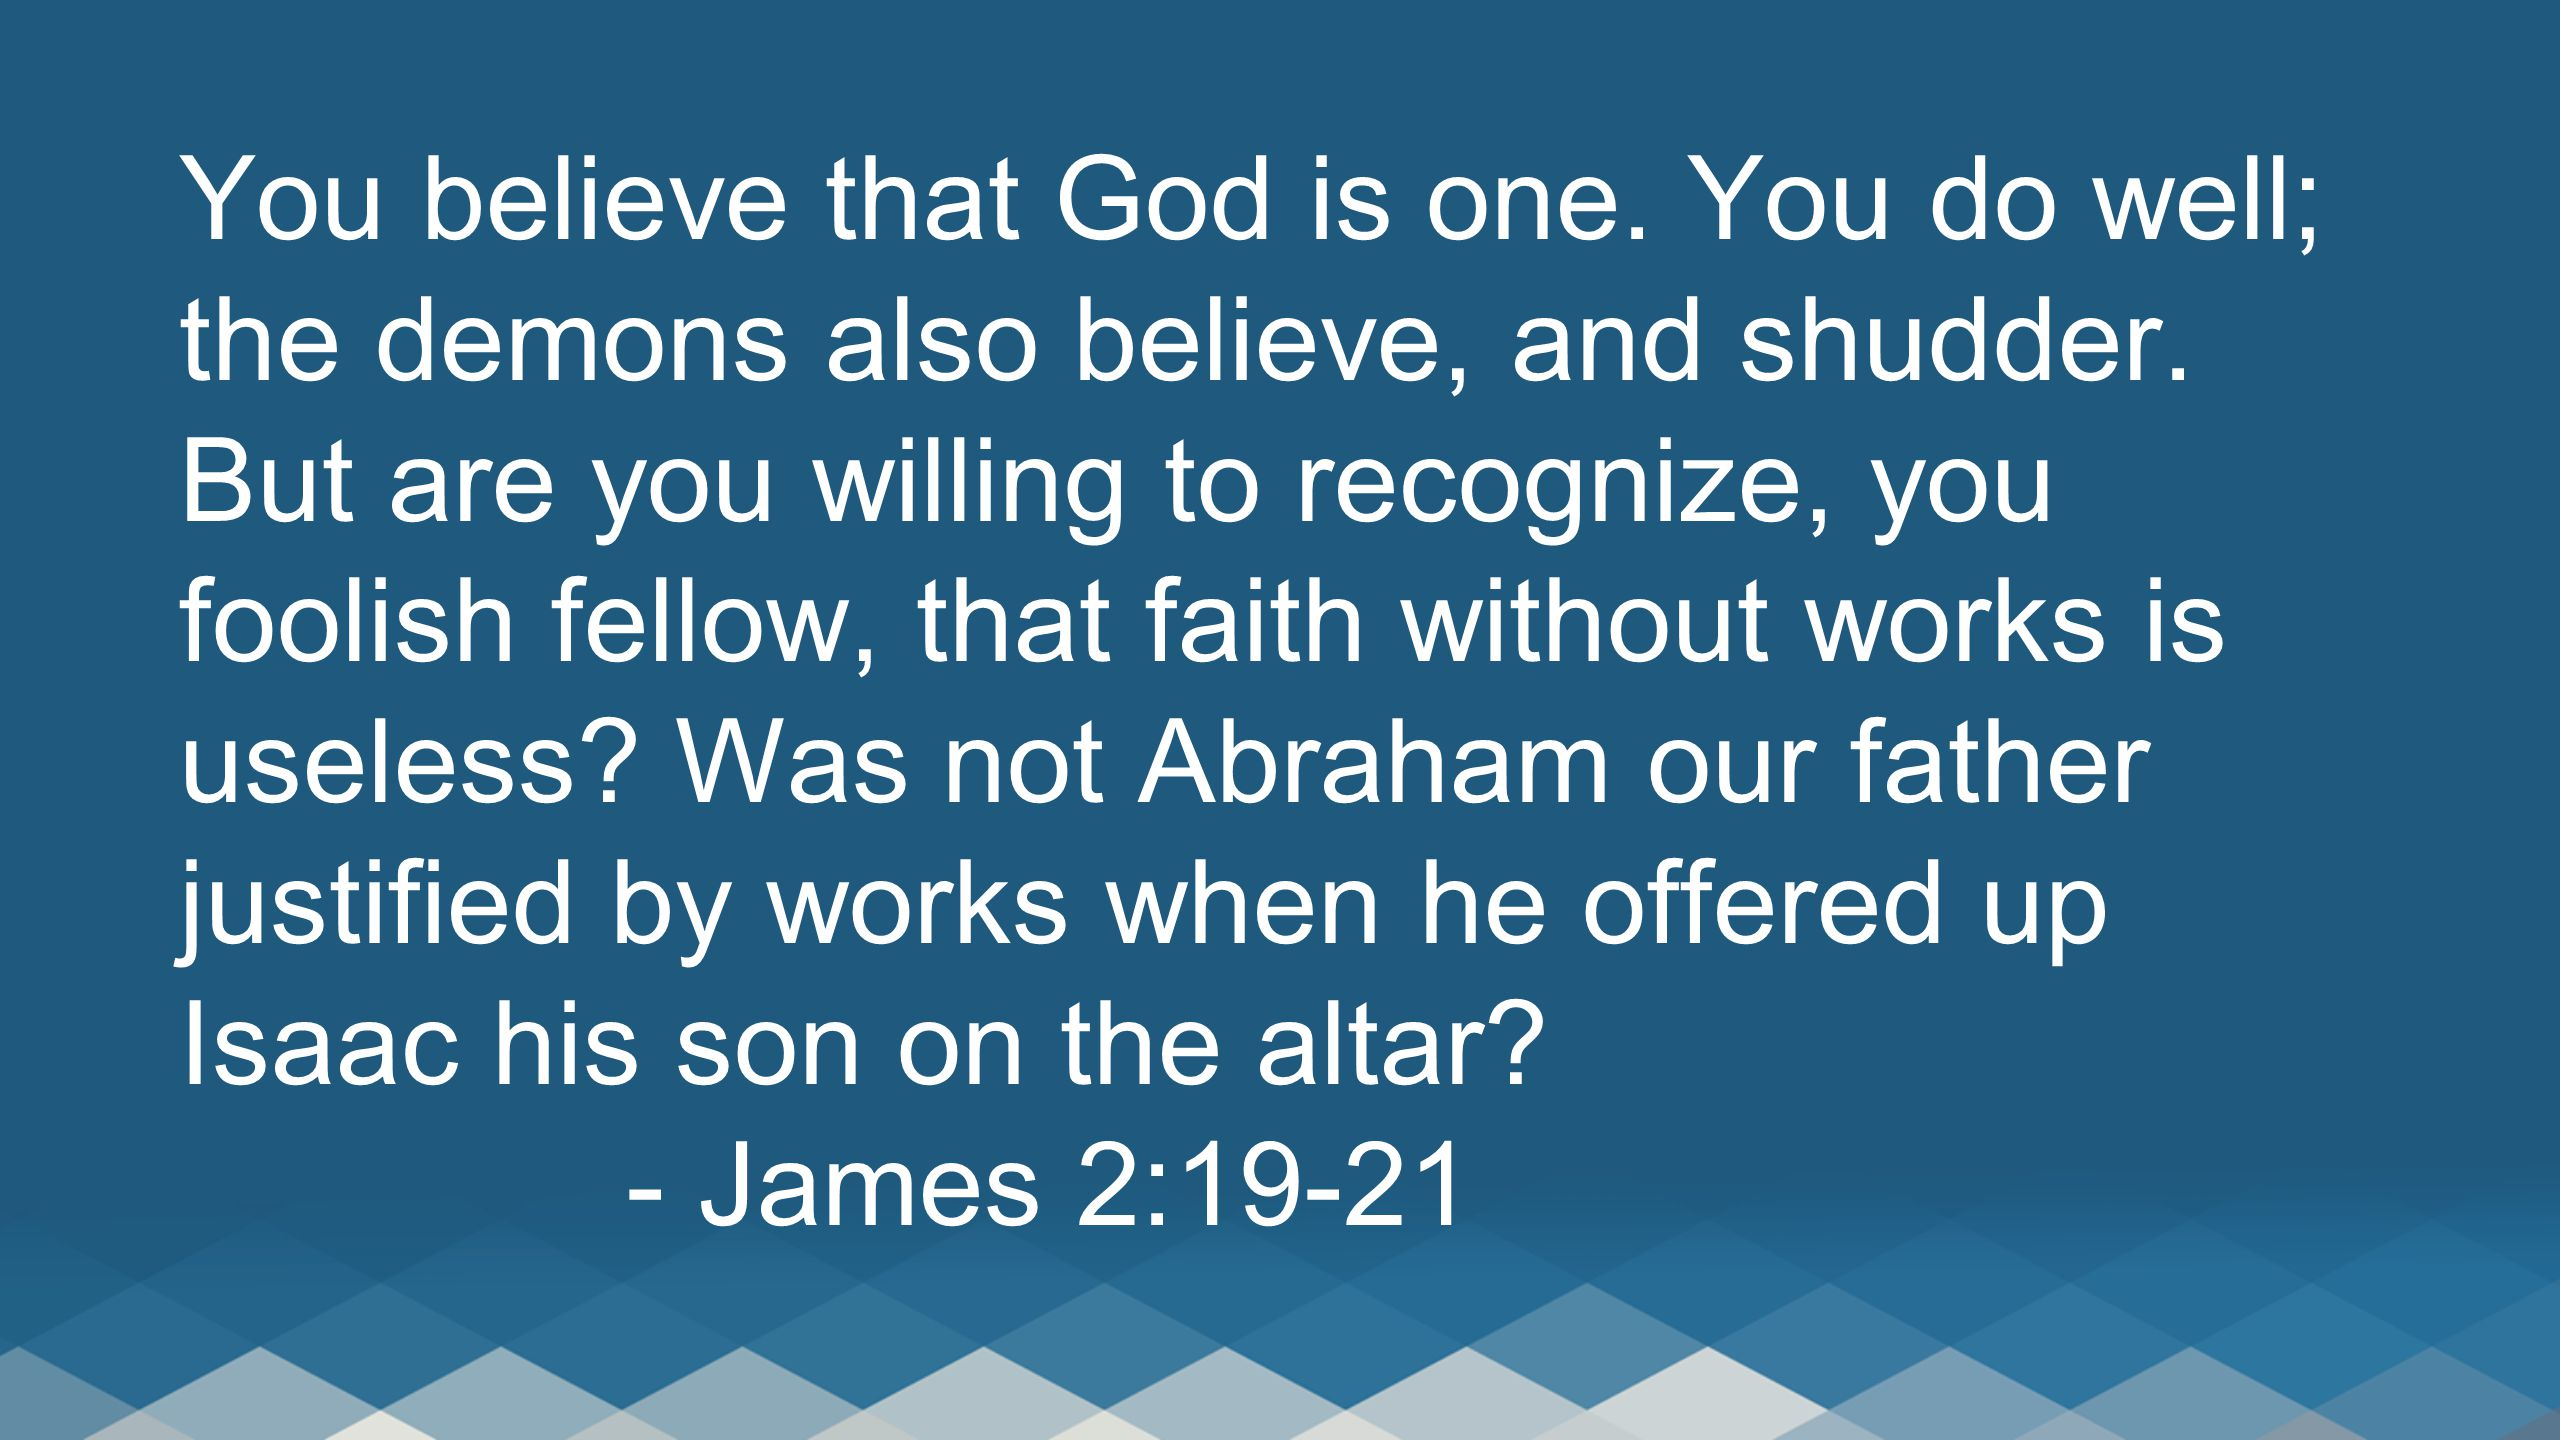 You believe that God is one. You do well; the demons also believe, and shudder. But are you willing to recognize, you foolish fellow, that faith witho